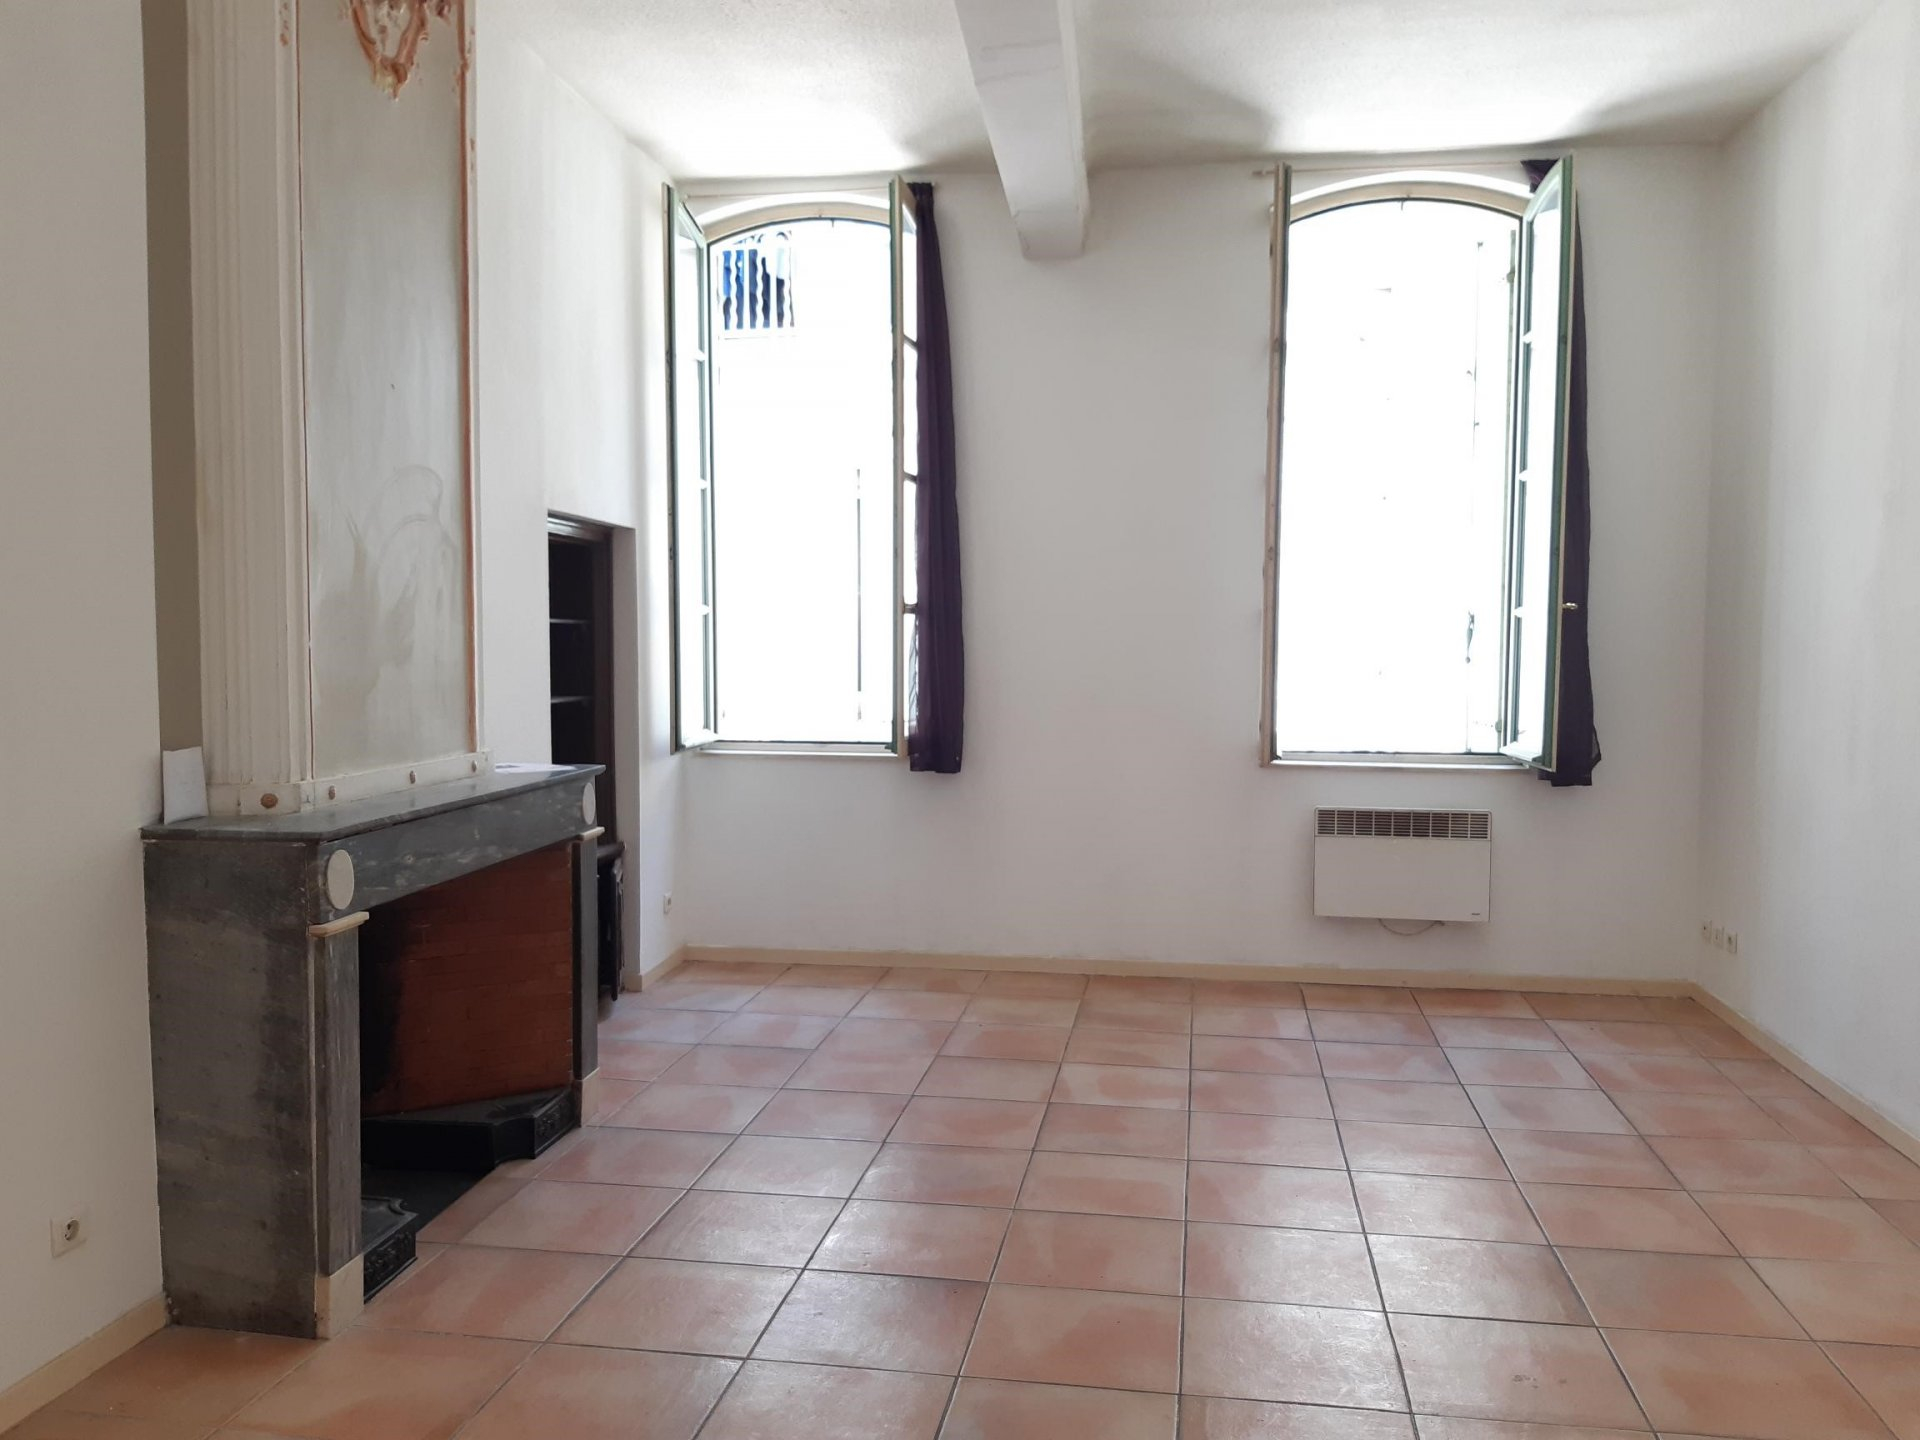 Location Appartement TARASCON Mandat : 0269